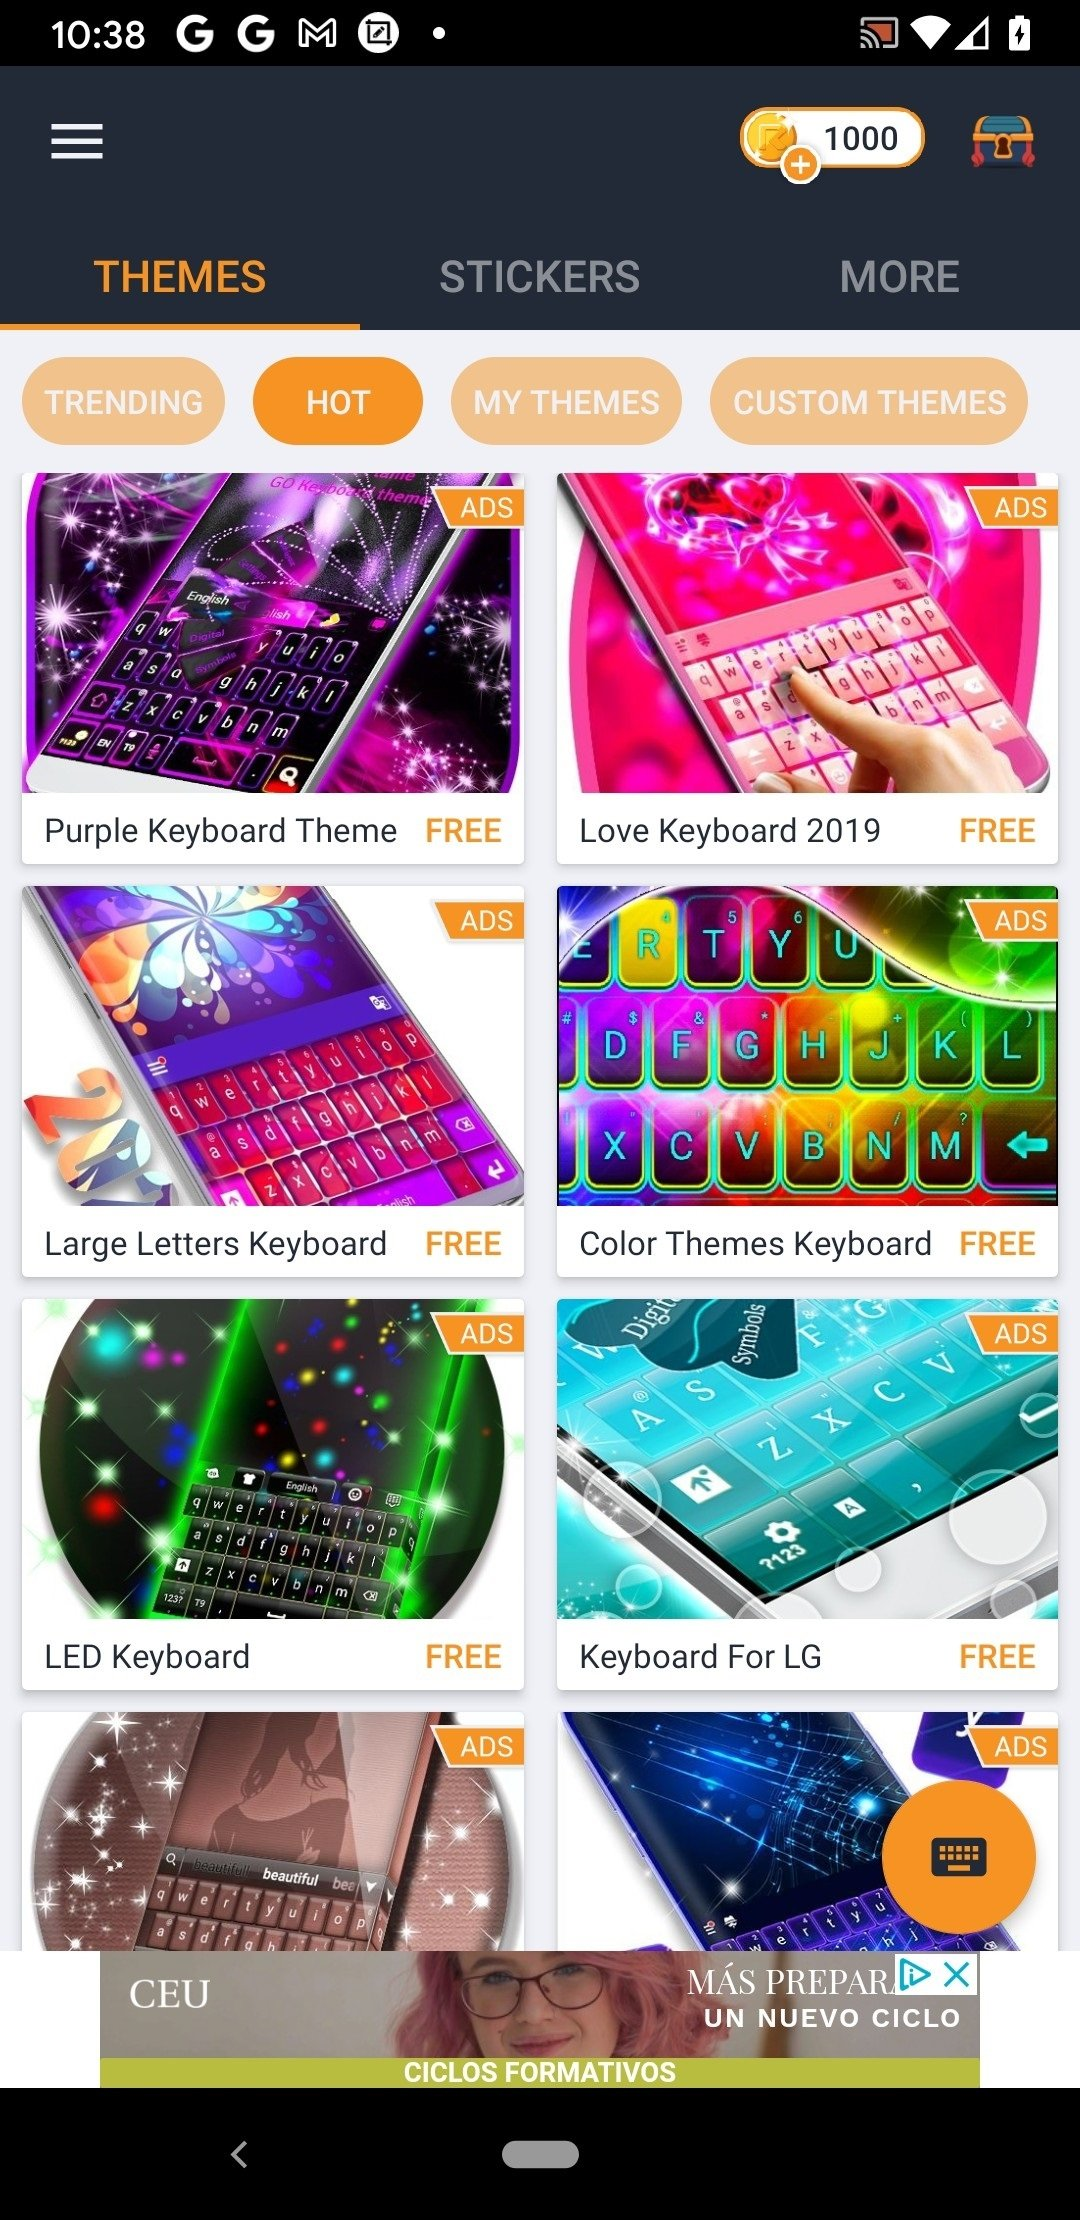 Redraw Keyboard Android image 8